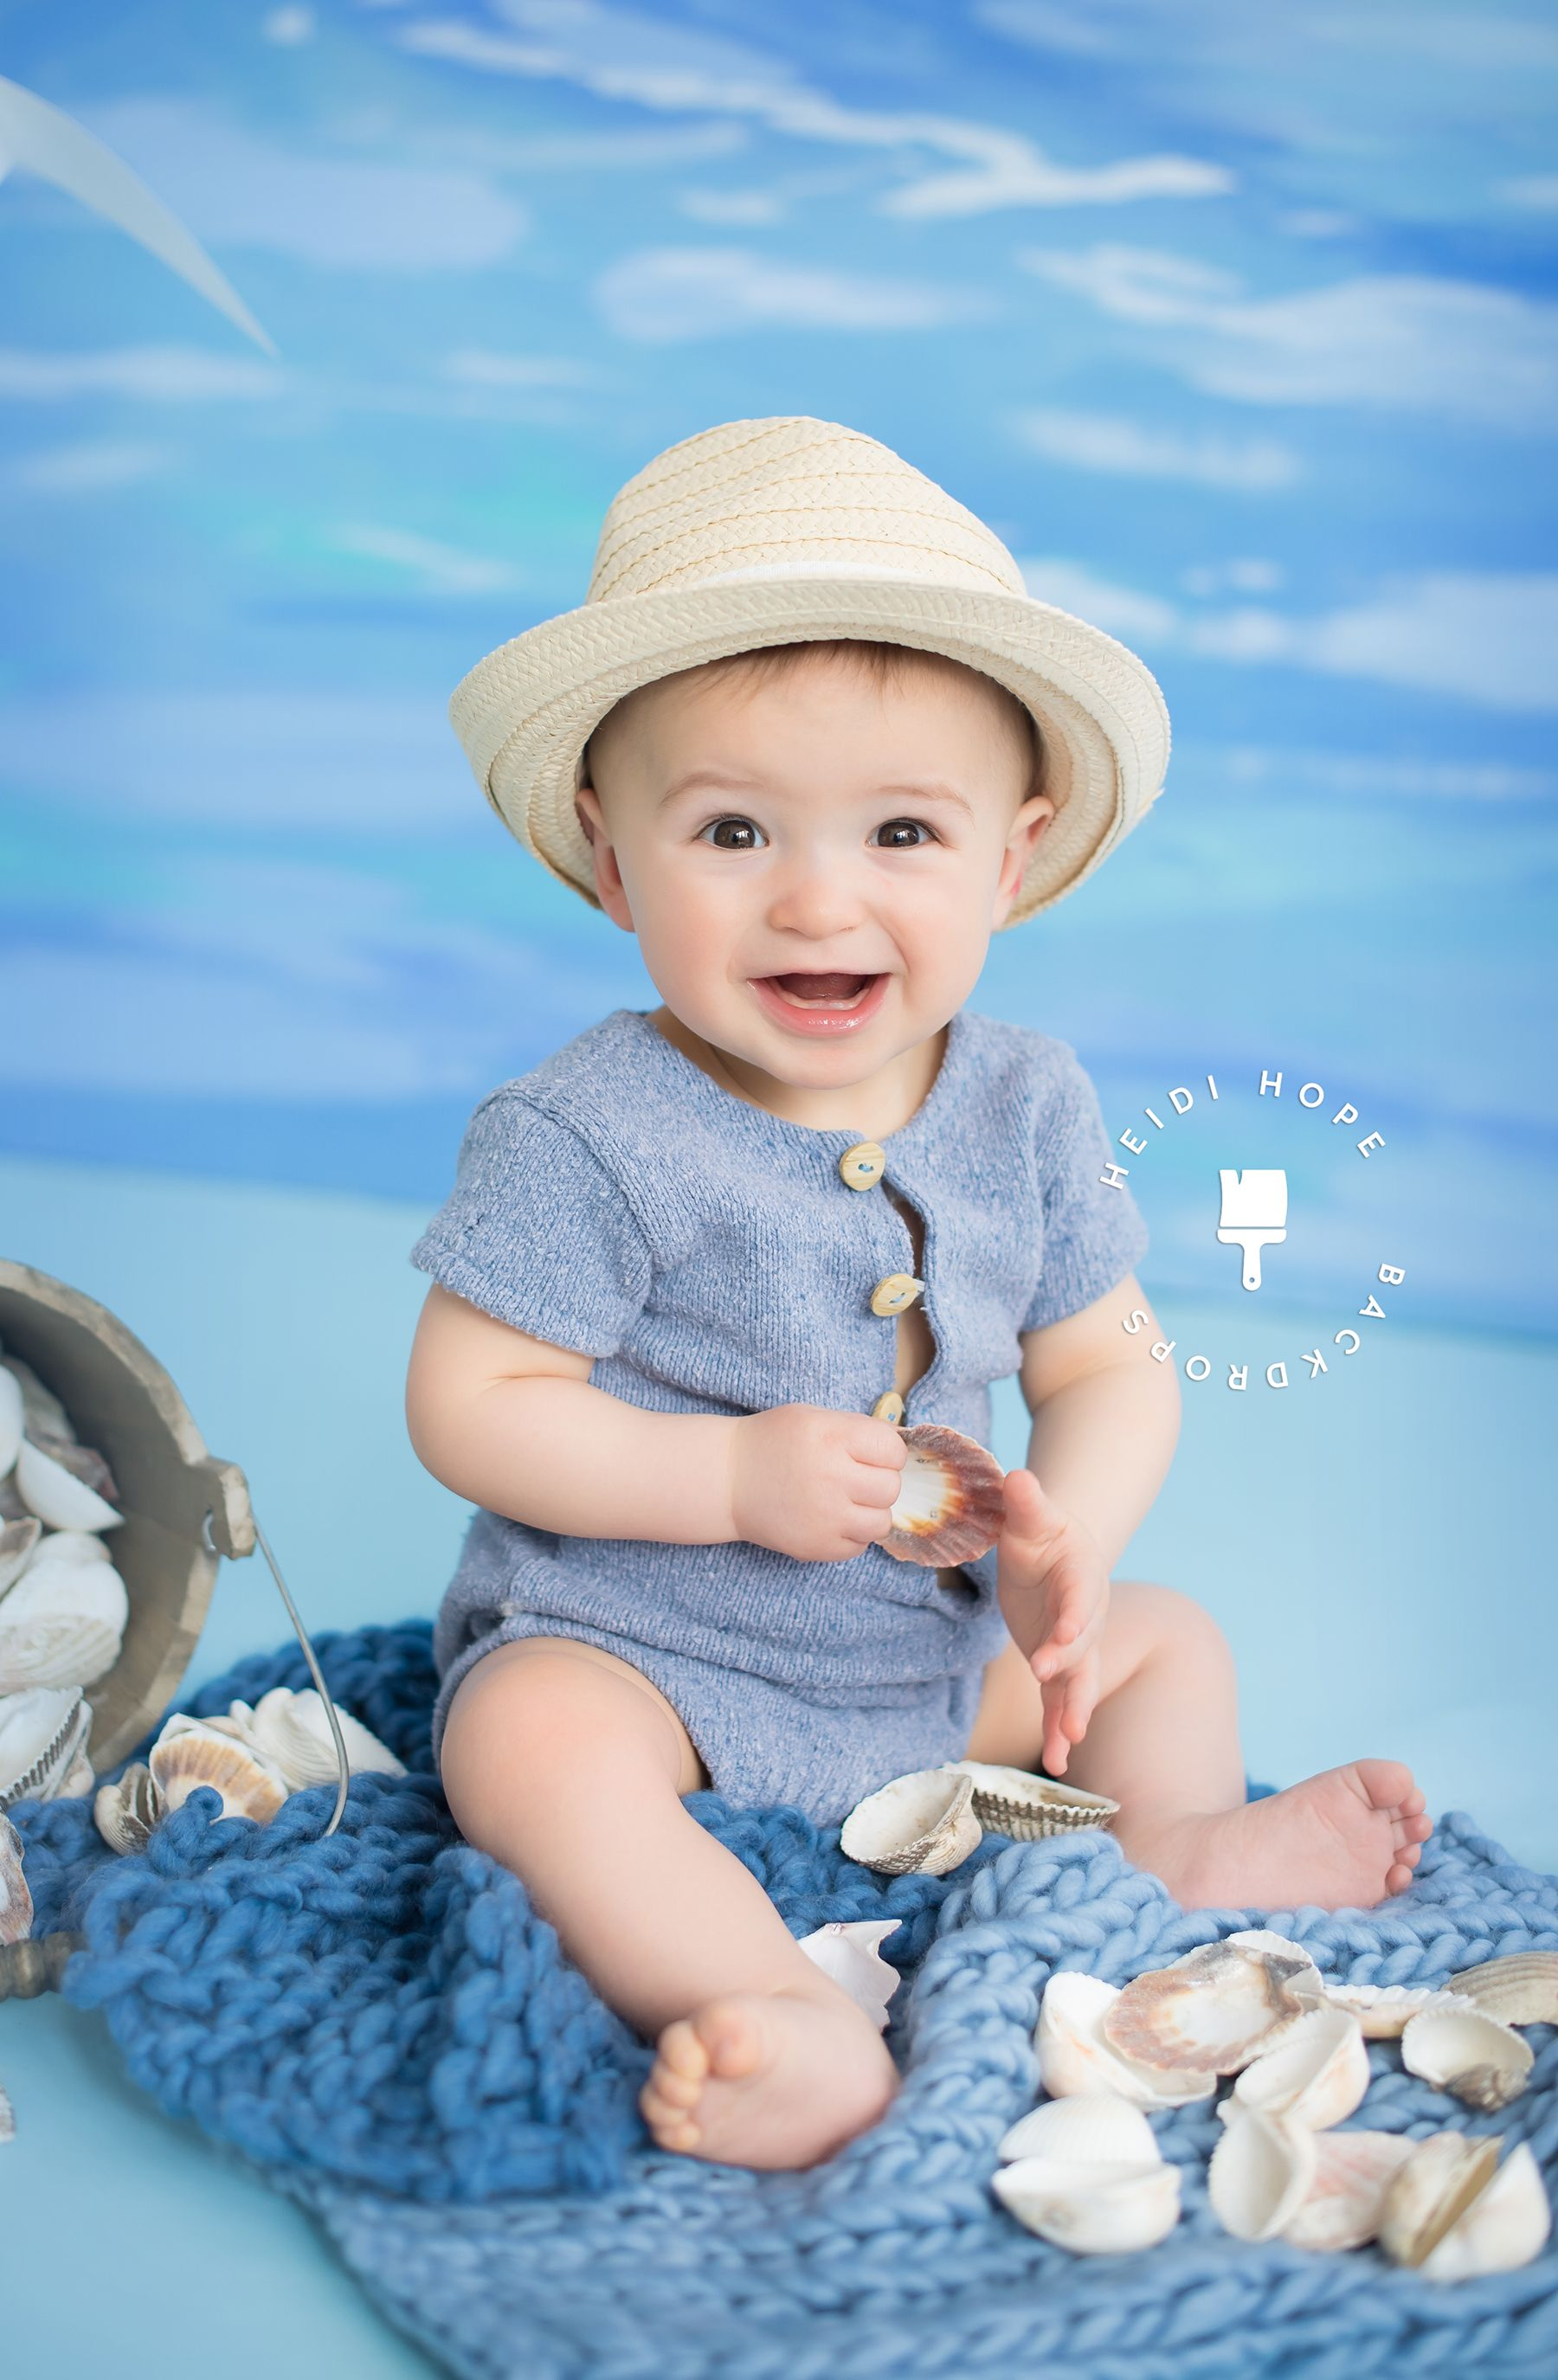 A summertime beach themed baby portrait session! Love this look ...